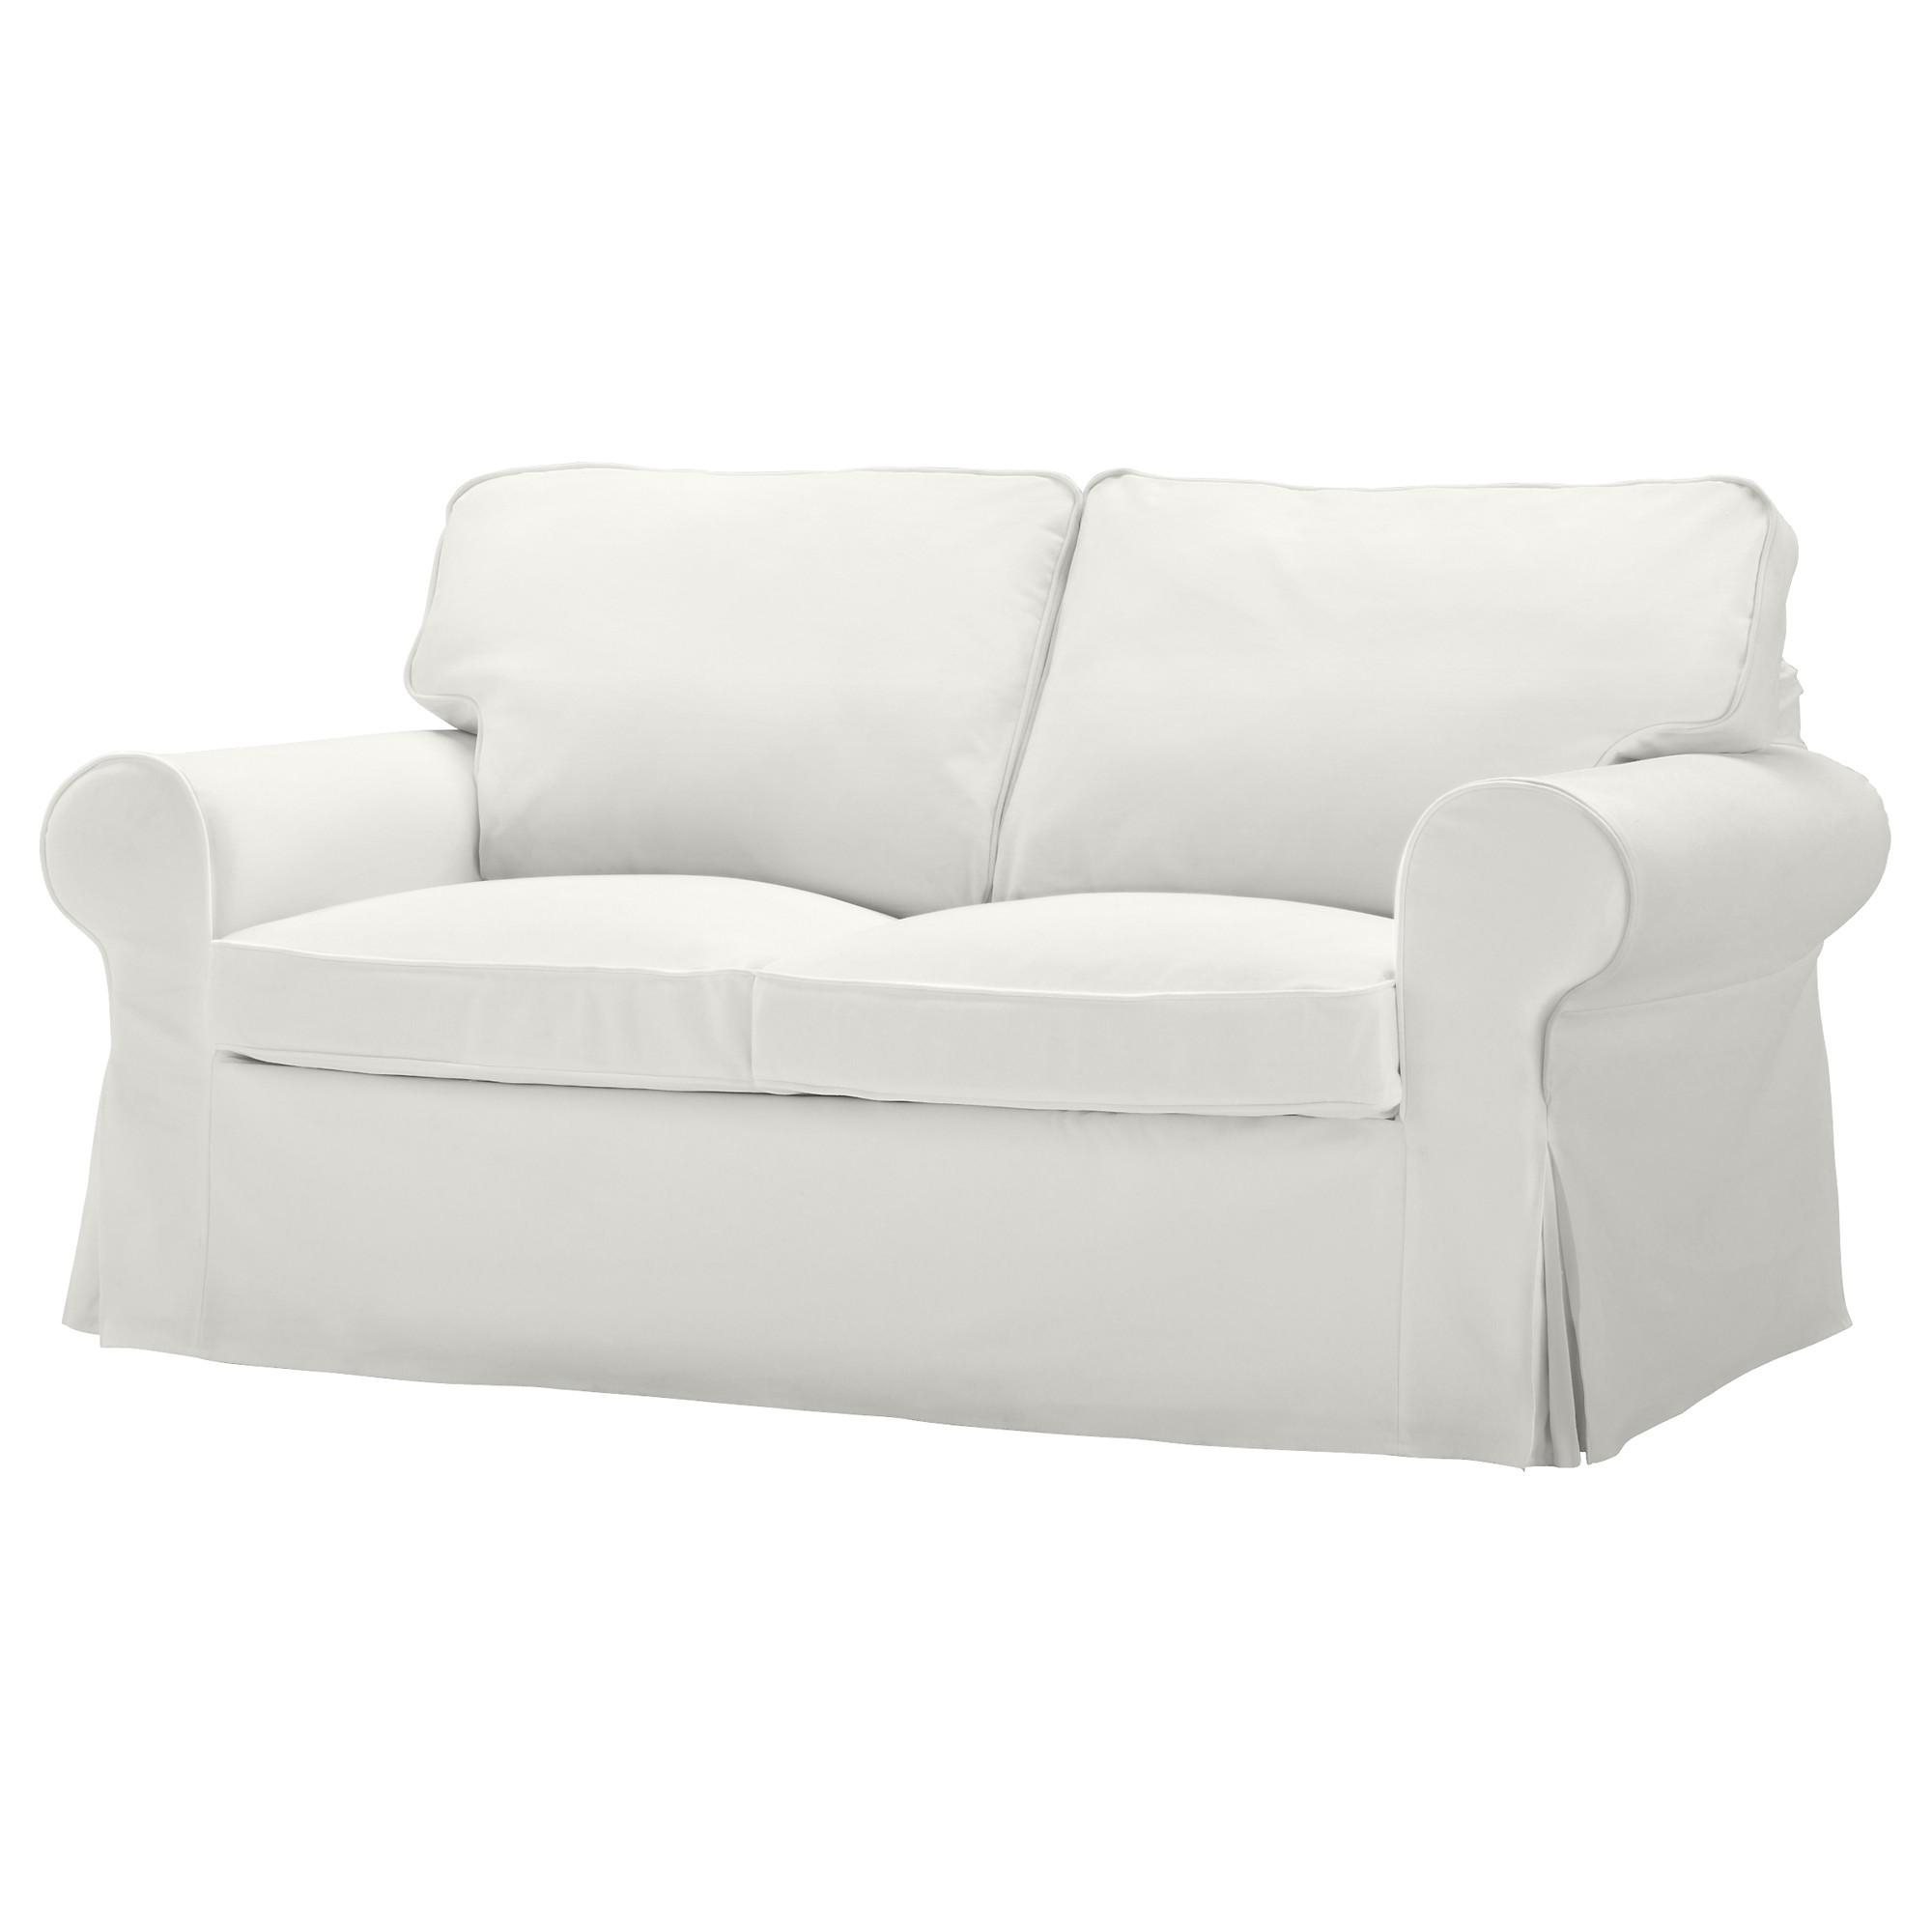 Ektorp Two-Seat Sofa Blekinge White - Ikea throughout Ikea Two Seater Sofas